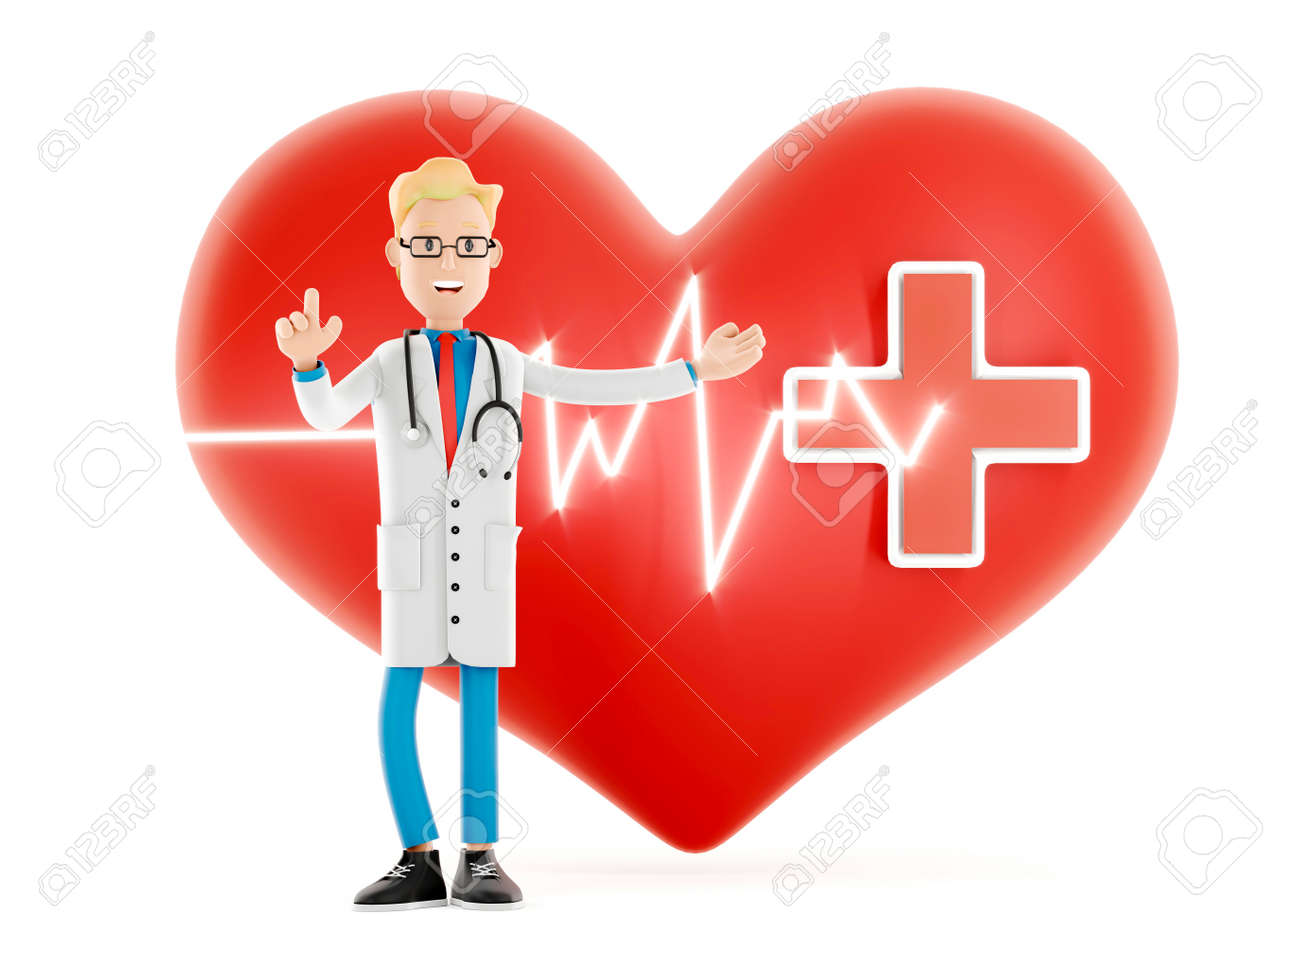 Cartoon doctor near a big red heart. Medical cardiology concept of health protection against heart attack and for a healthy heart. Health care3d illustration - 171588102